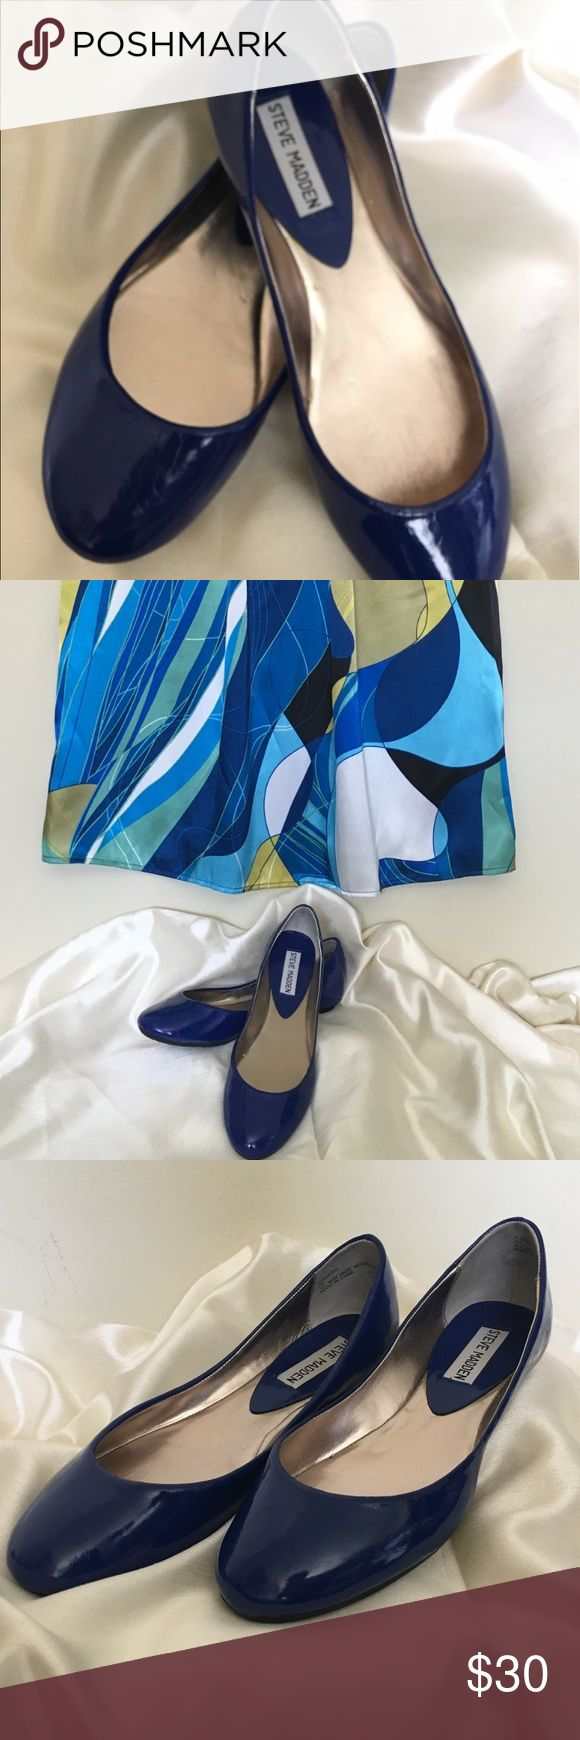 Size 7 Royal Blue Steve Madden Ballet Shoes Worn only once, these shoes are cute, comfortable and are available just in time for this season's blue trends. Steve Madden Shoes Flats & Loafers